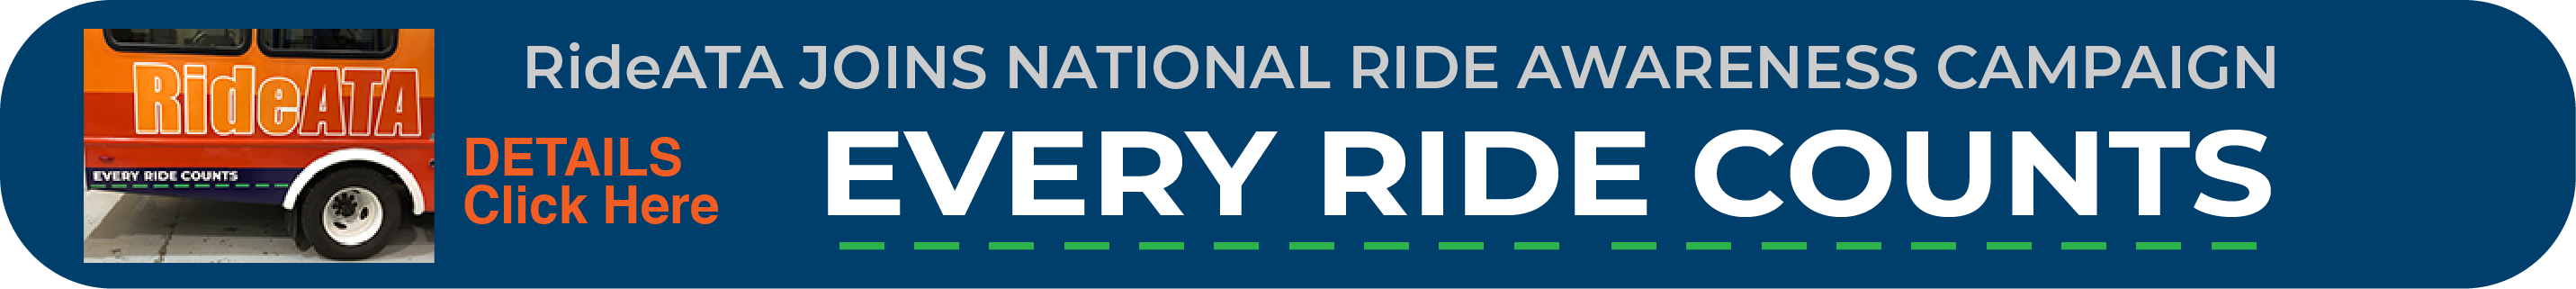 Every Ride Counts Banner 2019